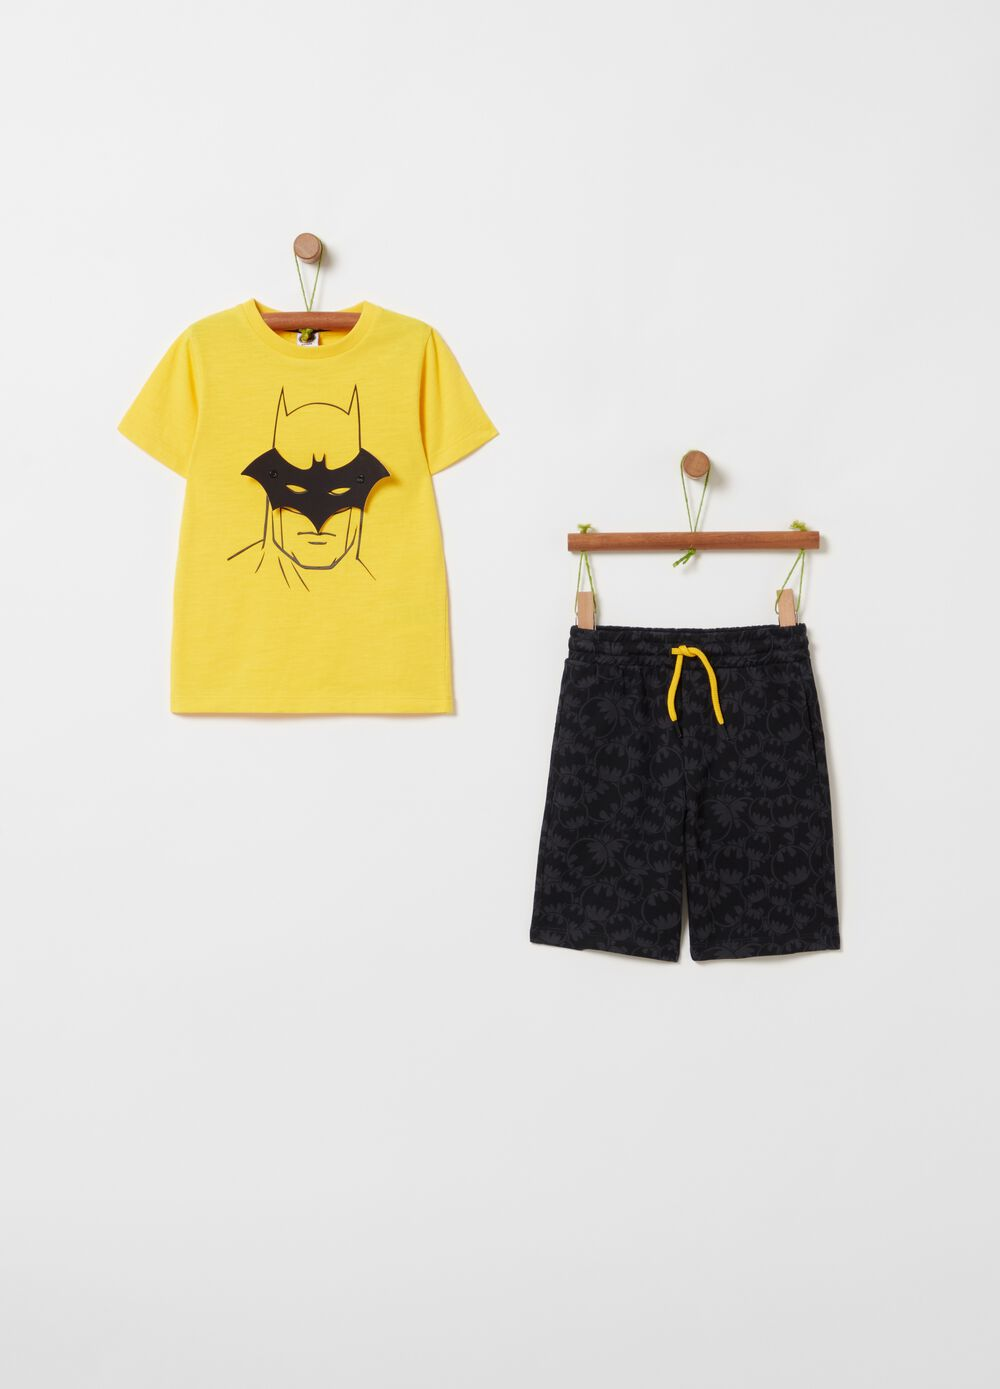 Batman jogging set with print and pattern